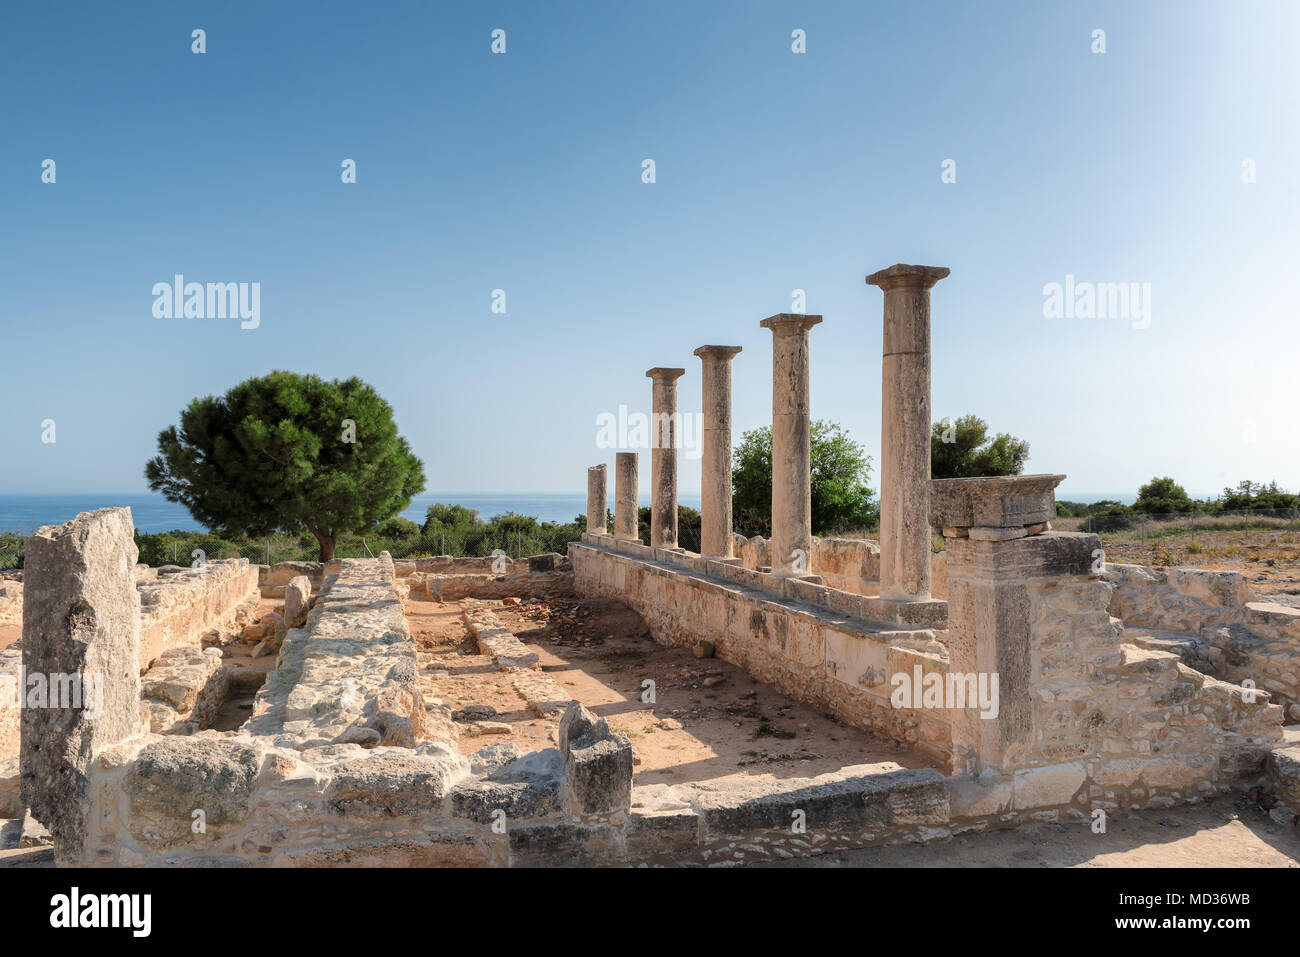 Sunset at Ancient Columns of Apollo Temple ruins, Limassol District. Cyprus. - Stock Image